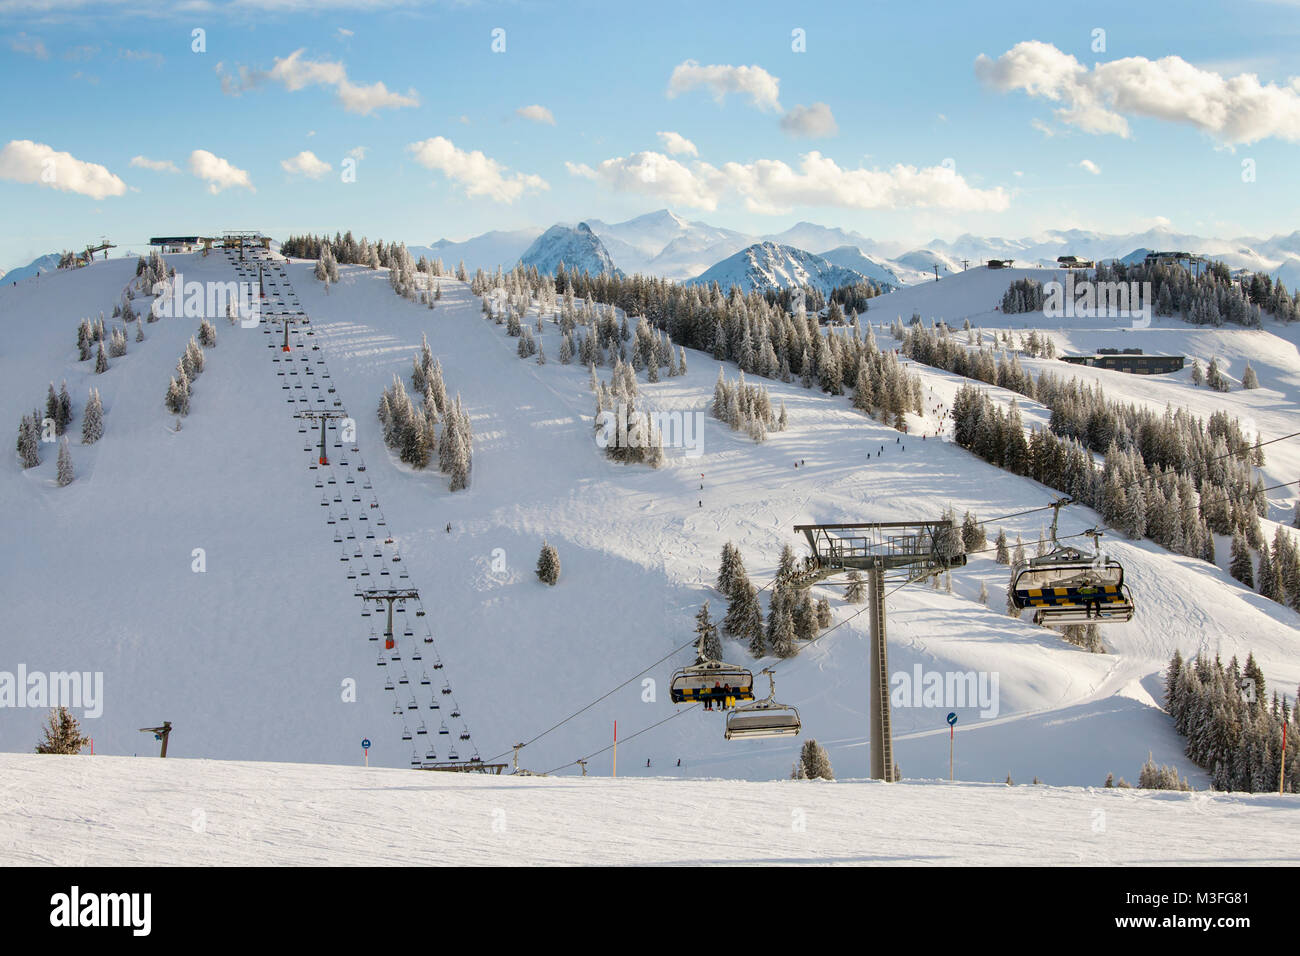 SCHEFFAU, AUSTRIA - JANUARY 18th, 2018: People enjoy the weather on the slopes in  ski resort of Scheffau, Austria. - Stock Image